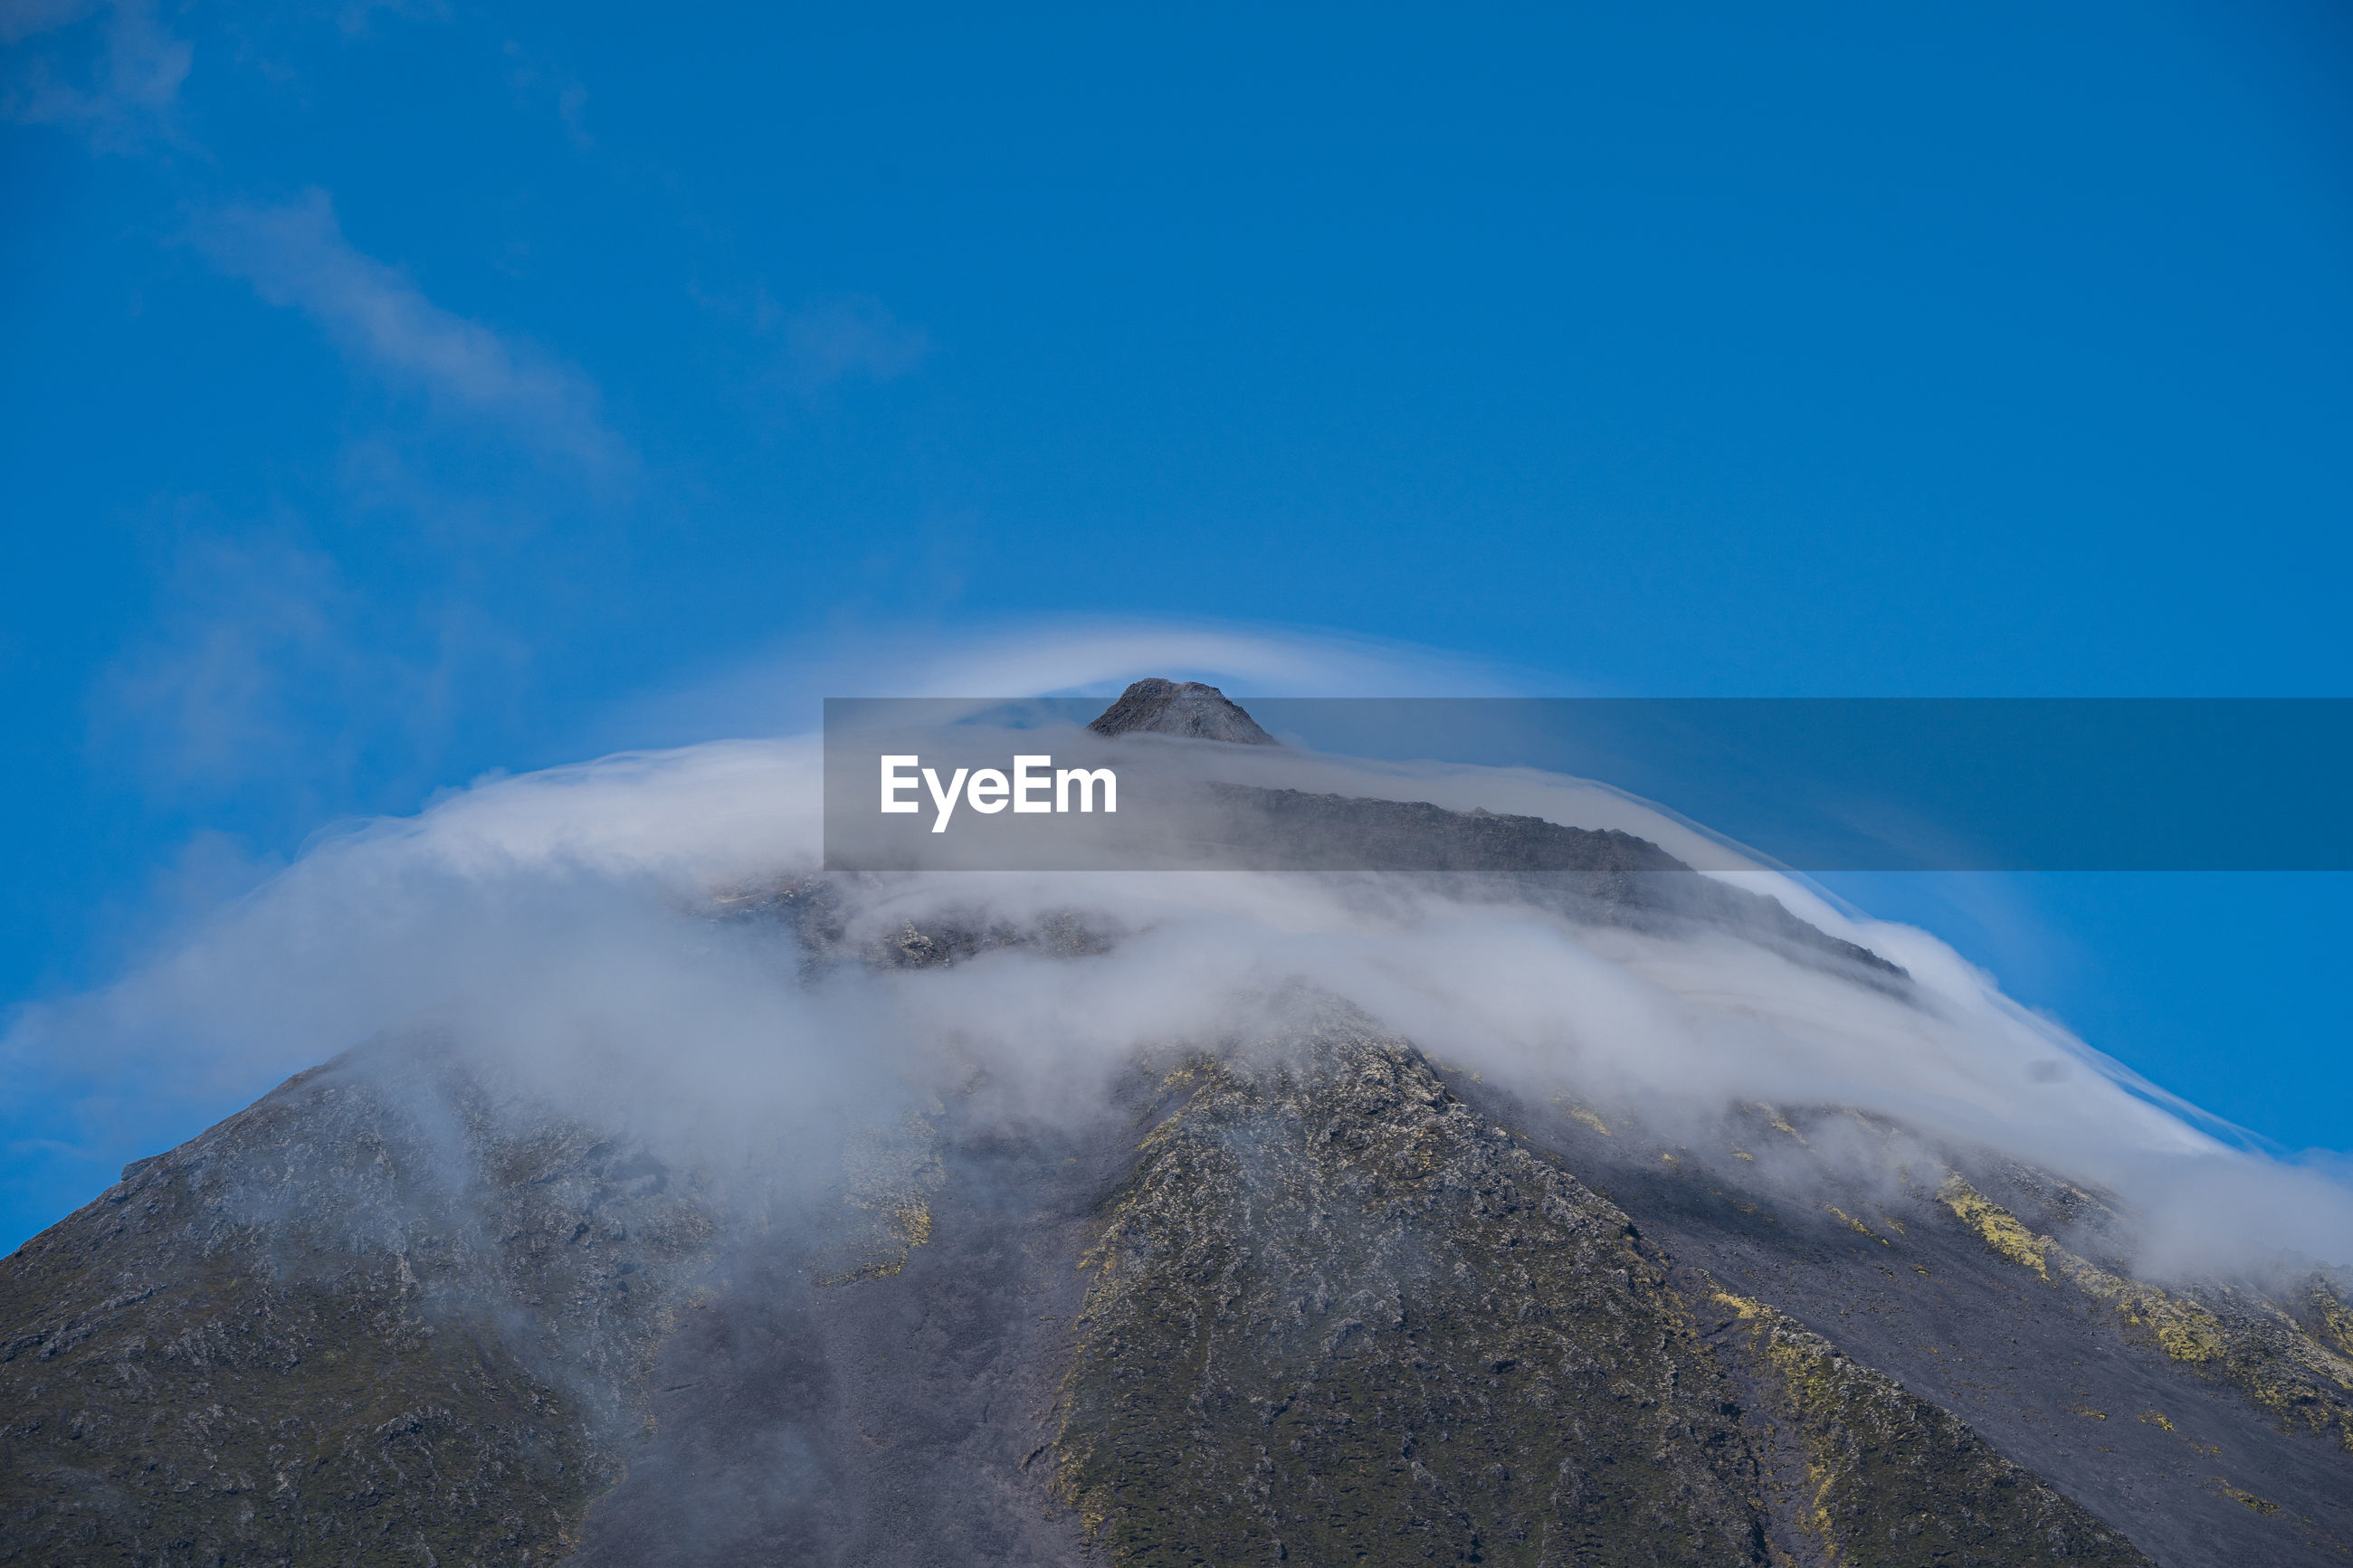 AERIAL VIEW OF VOLCANIC MOUNTAIN AGAINST BLUE SKY